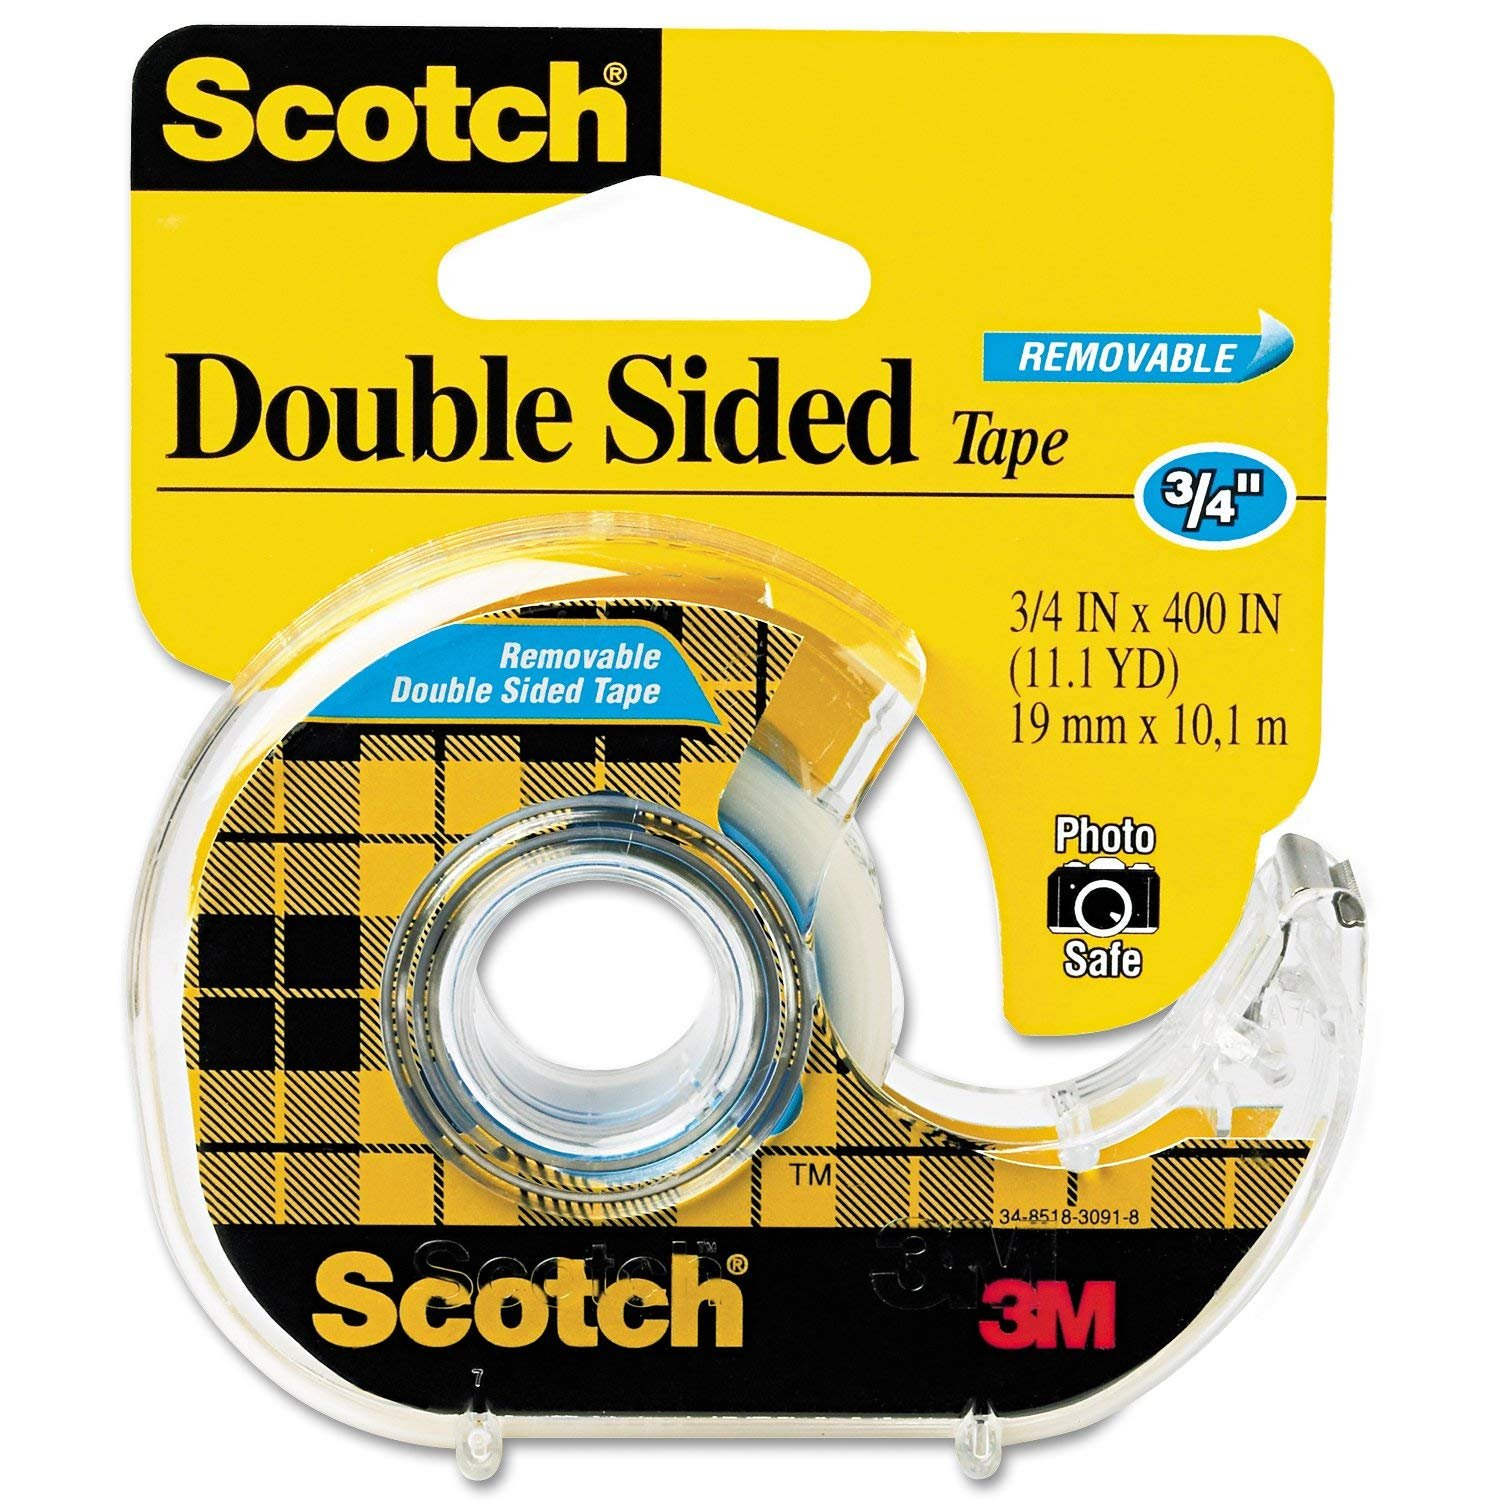 Amazon.com : Scotch Removable Double Sided Tape with Dispenser ...